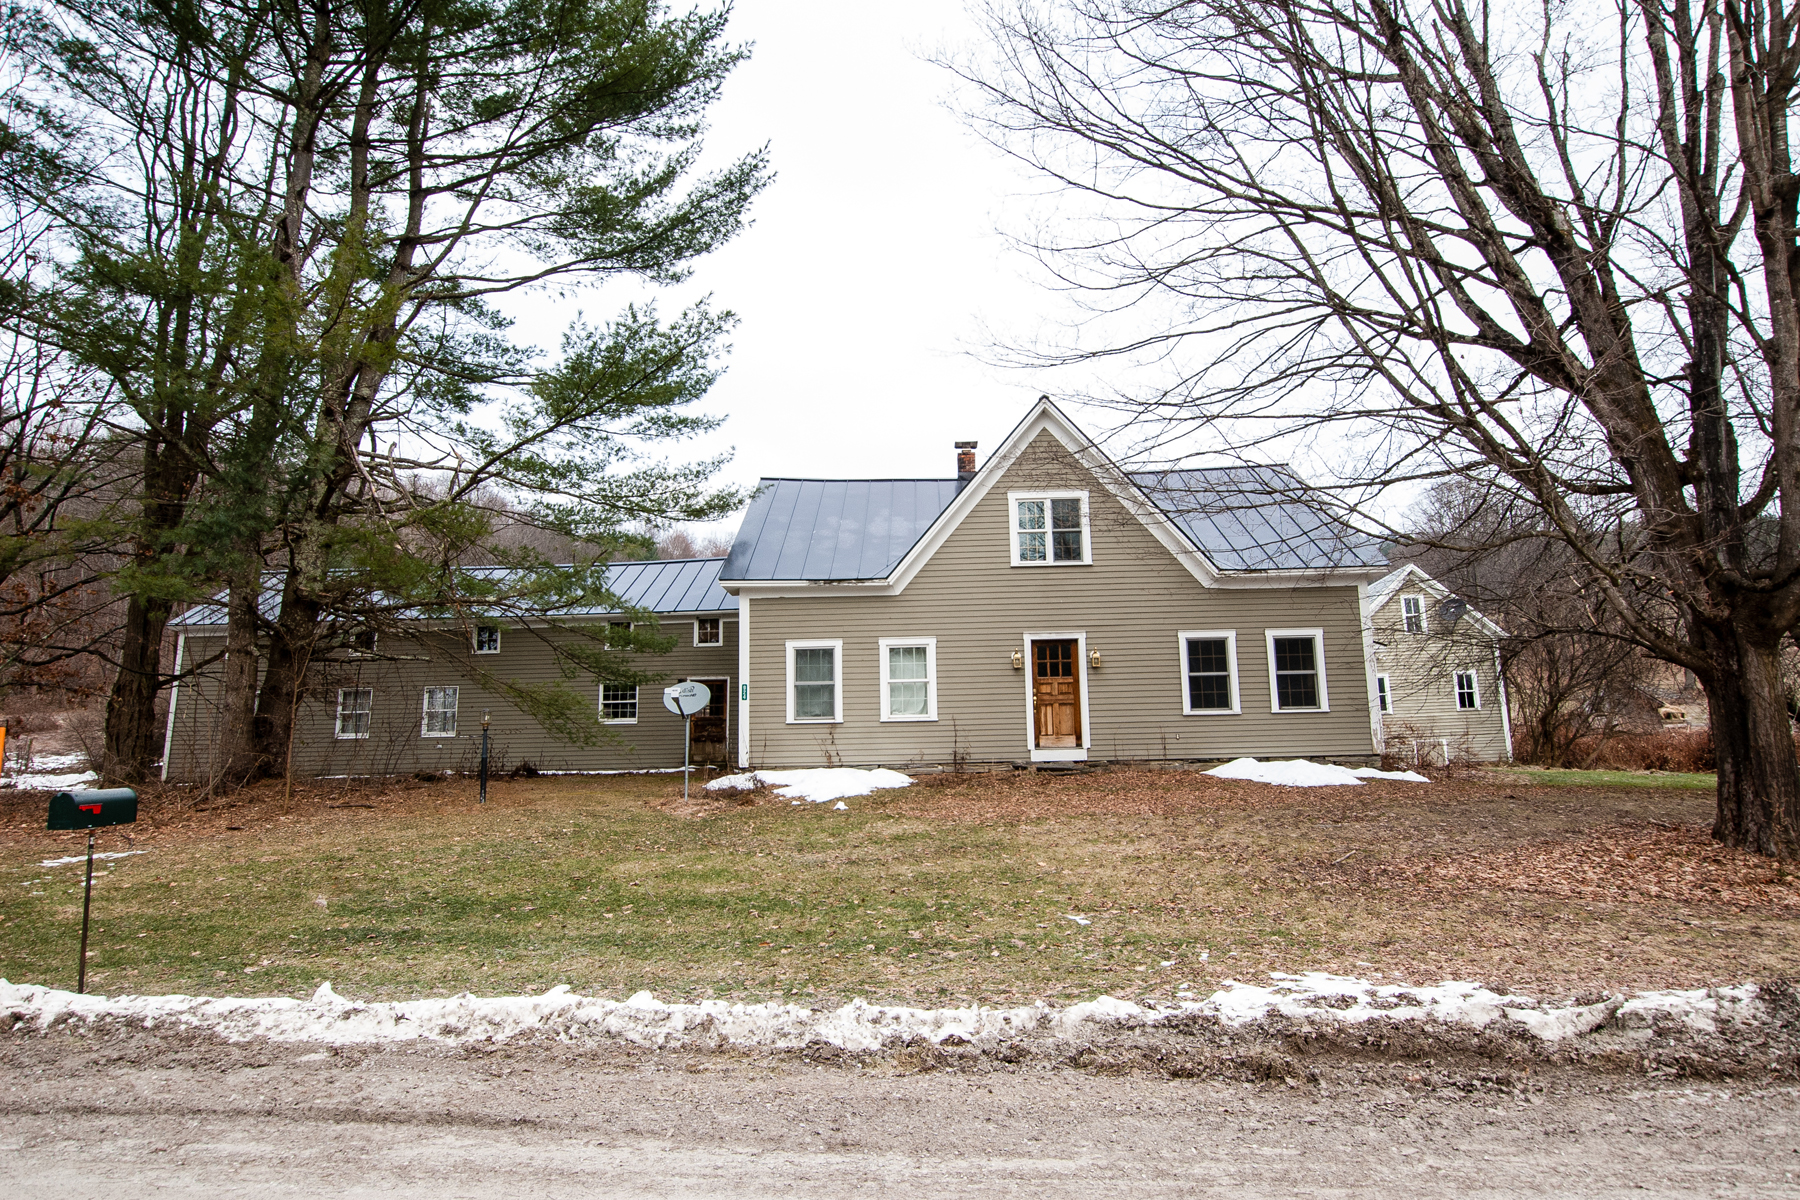 Single Family Home for Sale at 924 Frog Hollow Road, Hubbardton 924 Frog Hollow Rd Hubbardton, Vermont 05735 United States